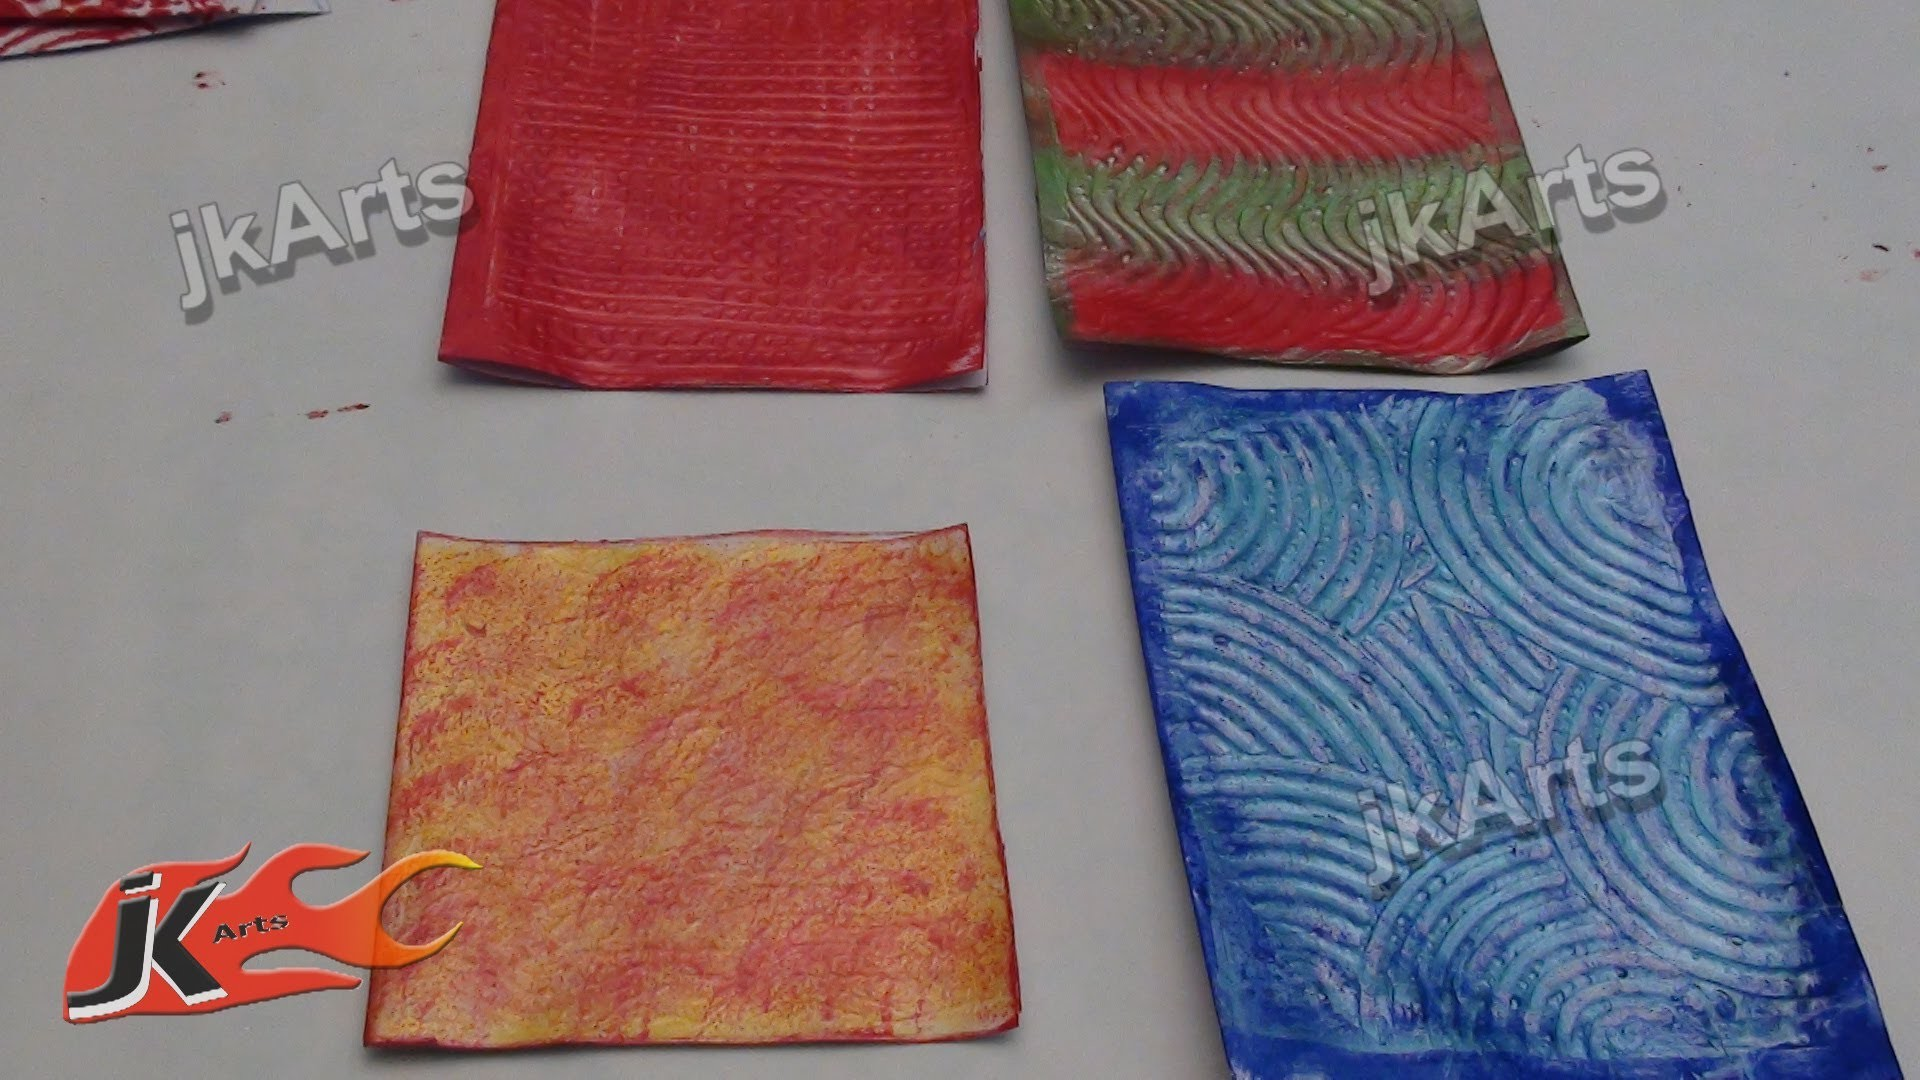 DIY 3D Textures with Glue for Name Plate and Greeting Cards - JK Arts 279